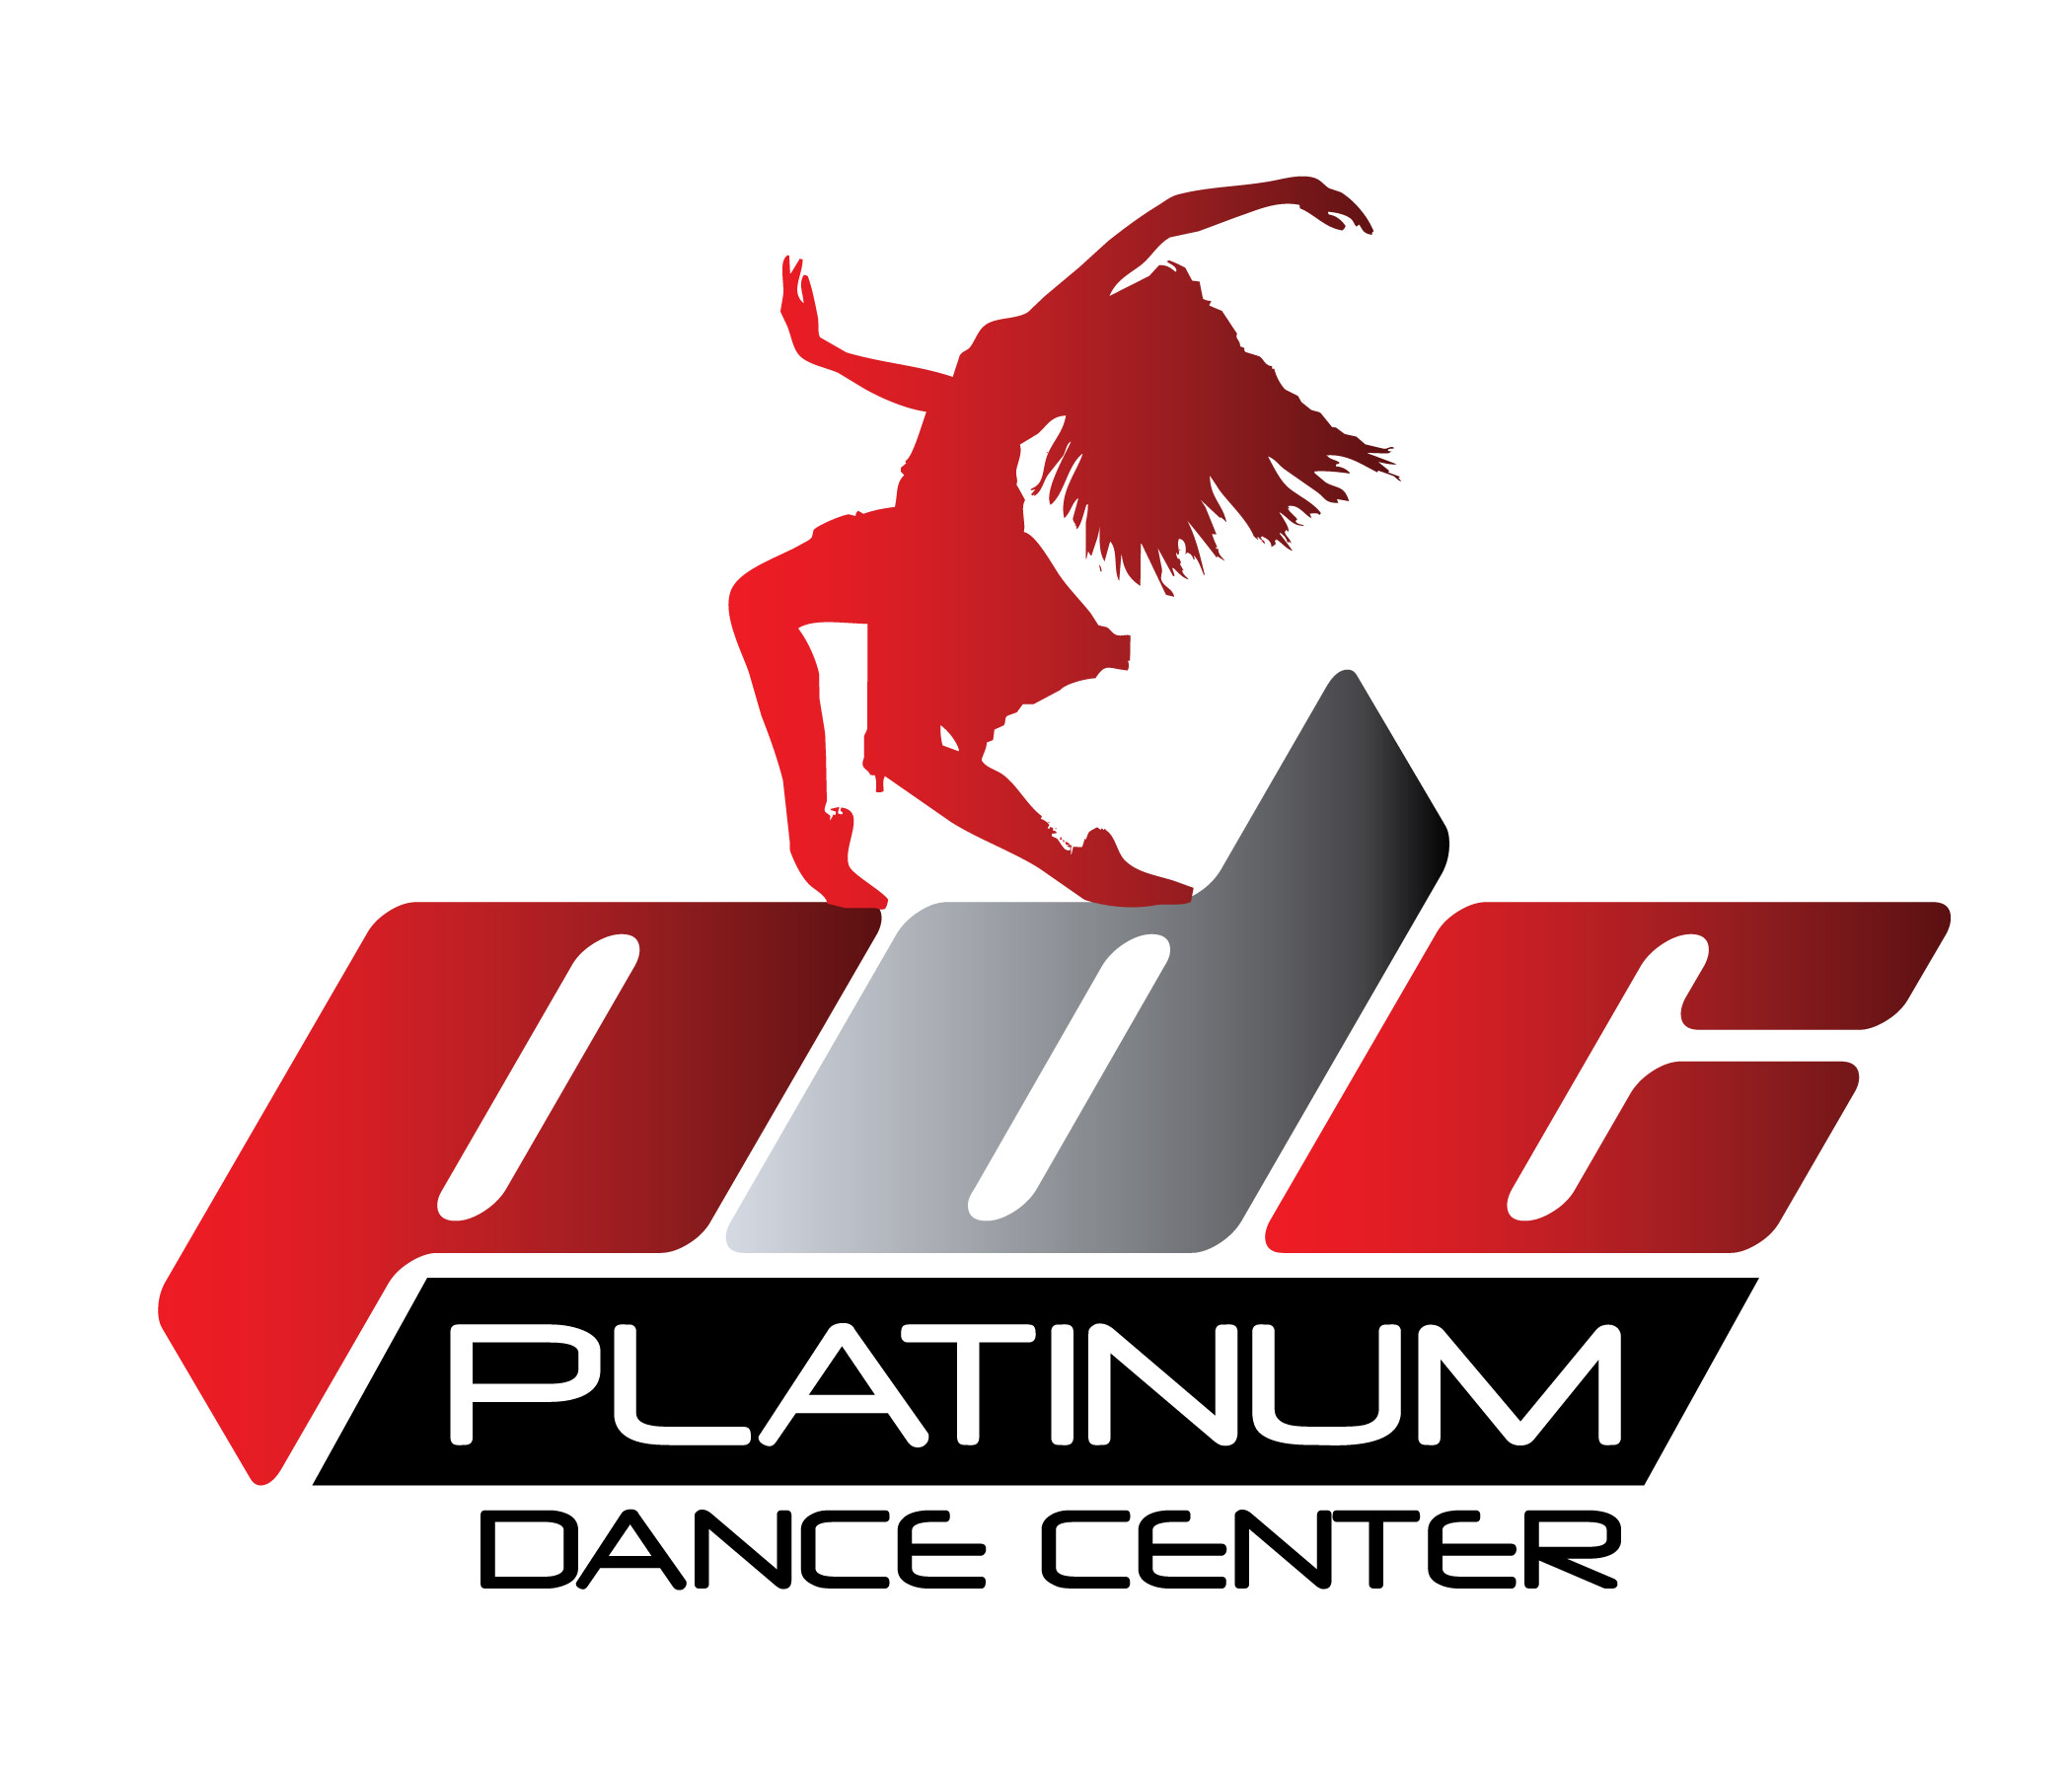 Platinum Dance Center